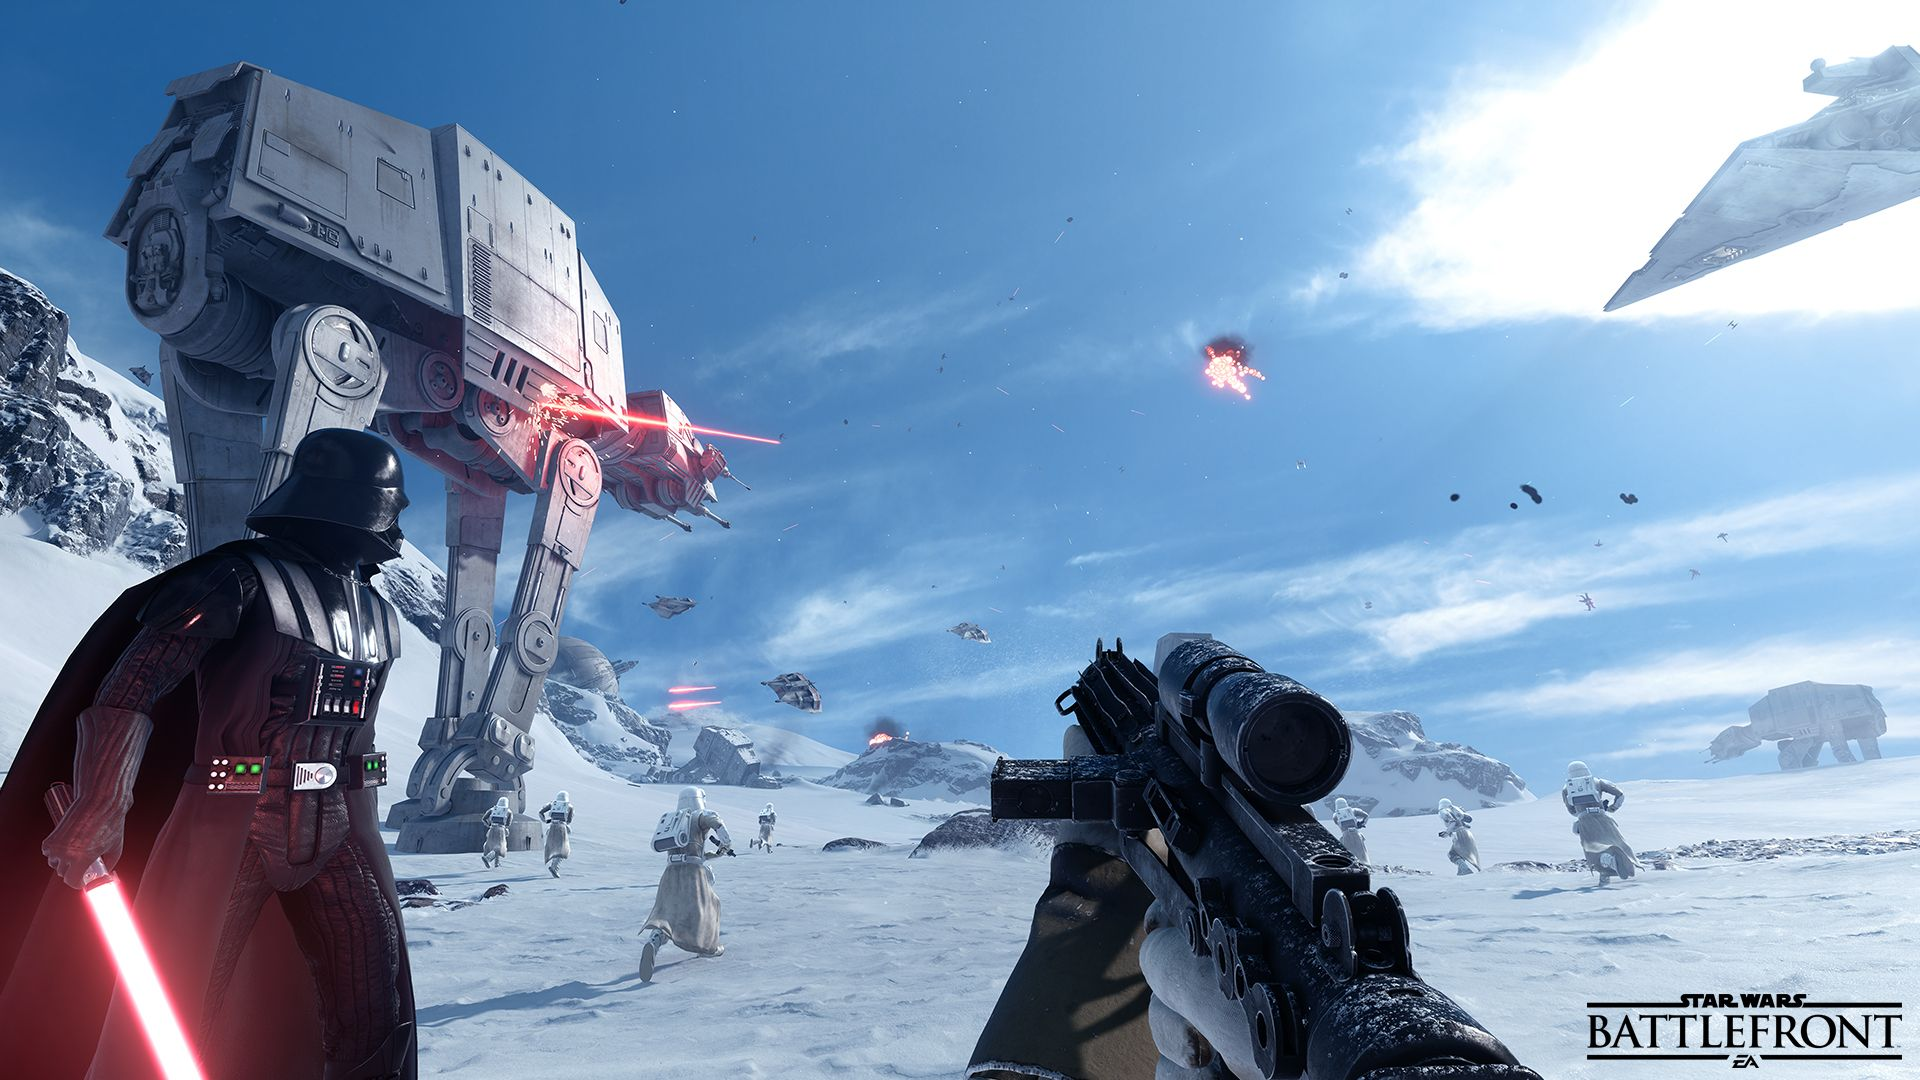 Star Wars: Battlefront (PS4) - feel its force